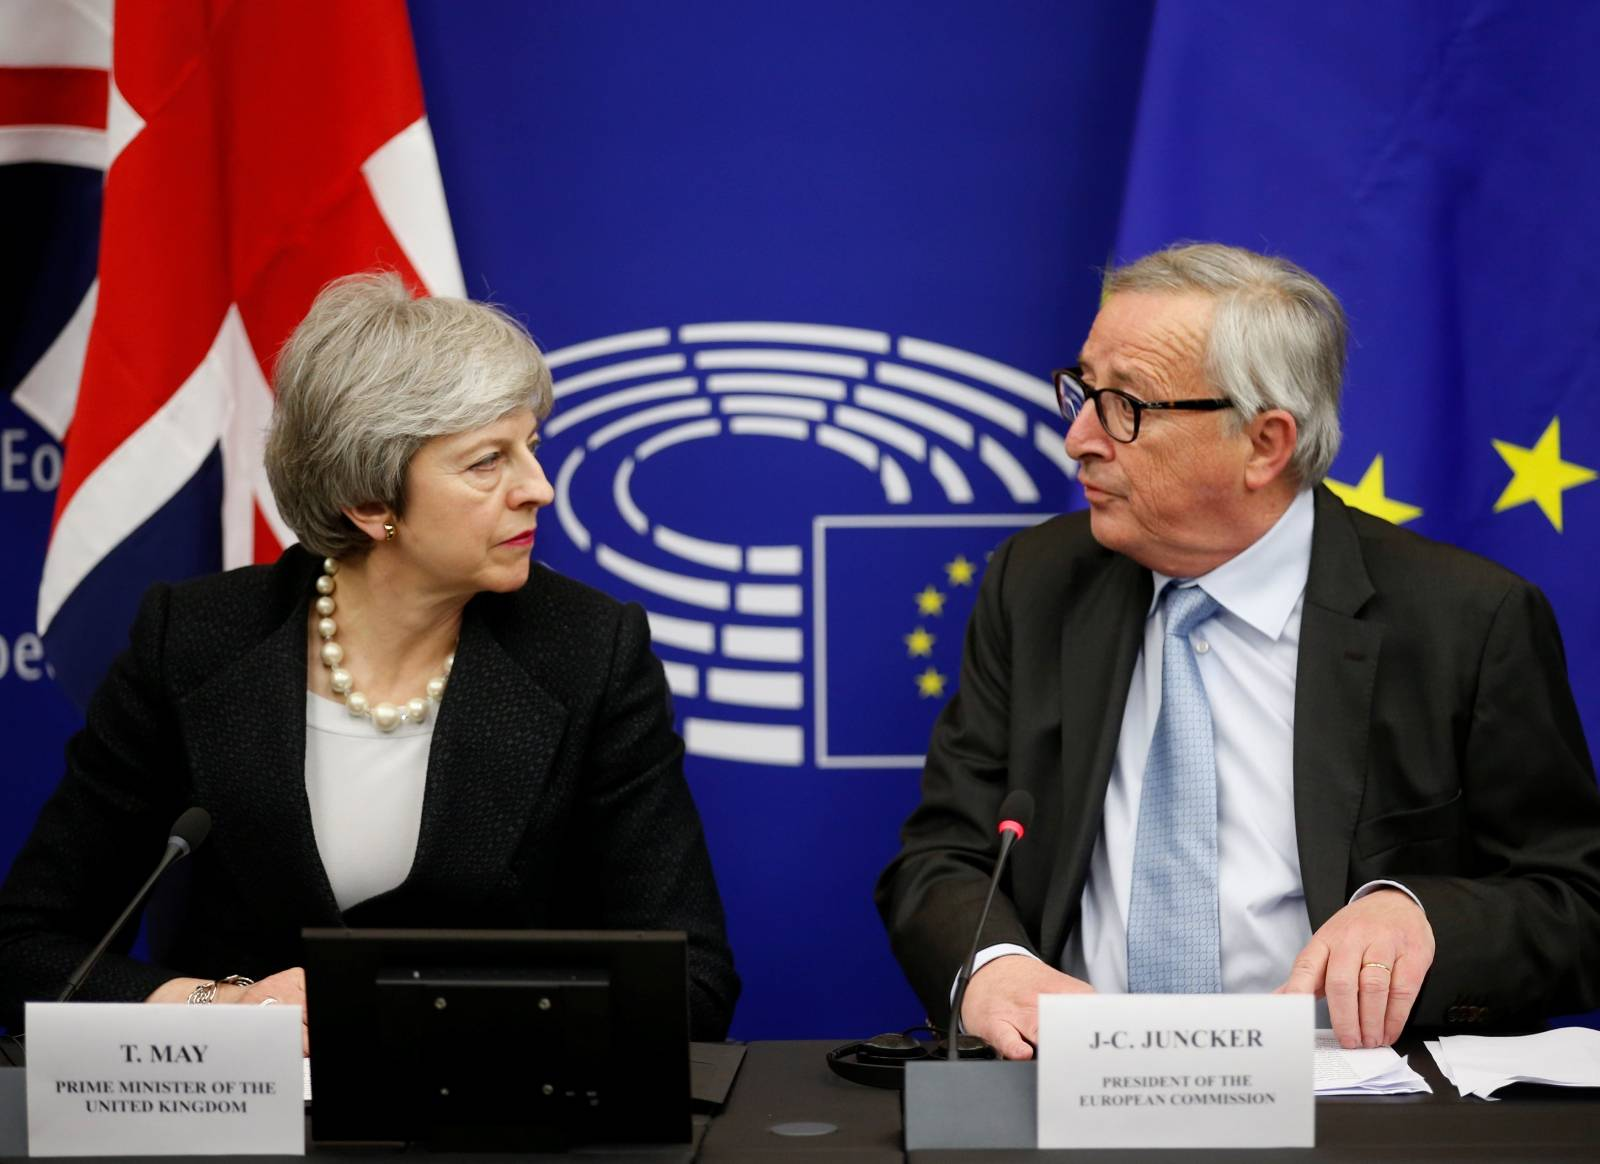 British Prime Minister Theresa May and European Commission President Jean-Claude Juncker look at each other during a news conference in Strasbourg